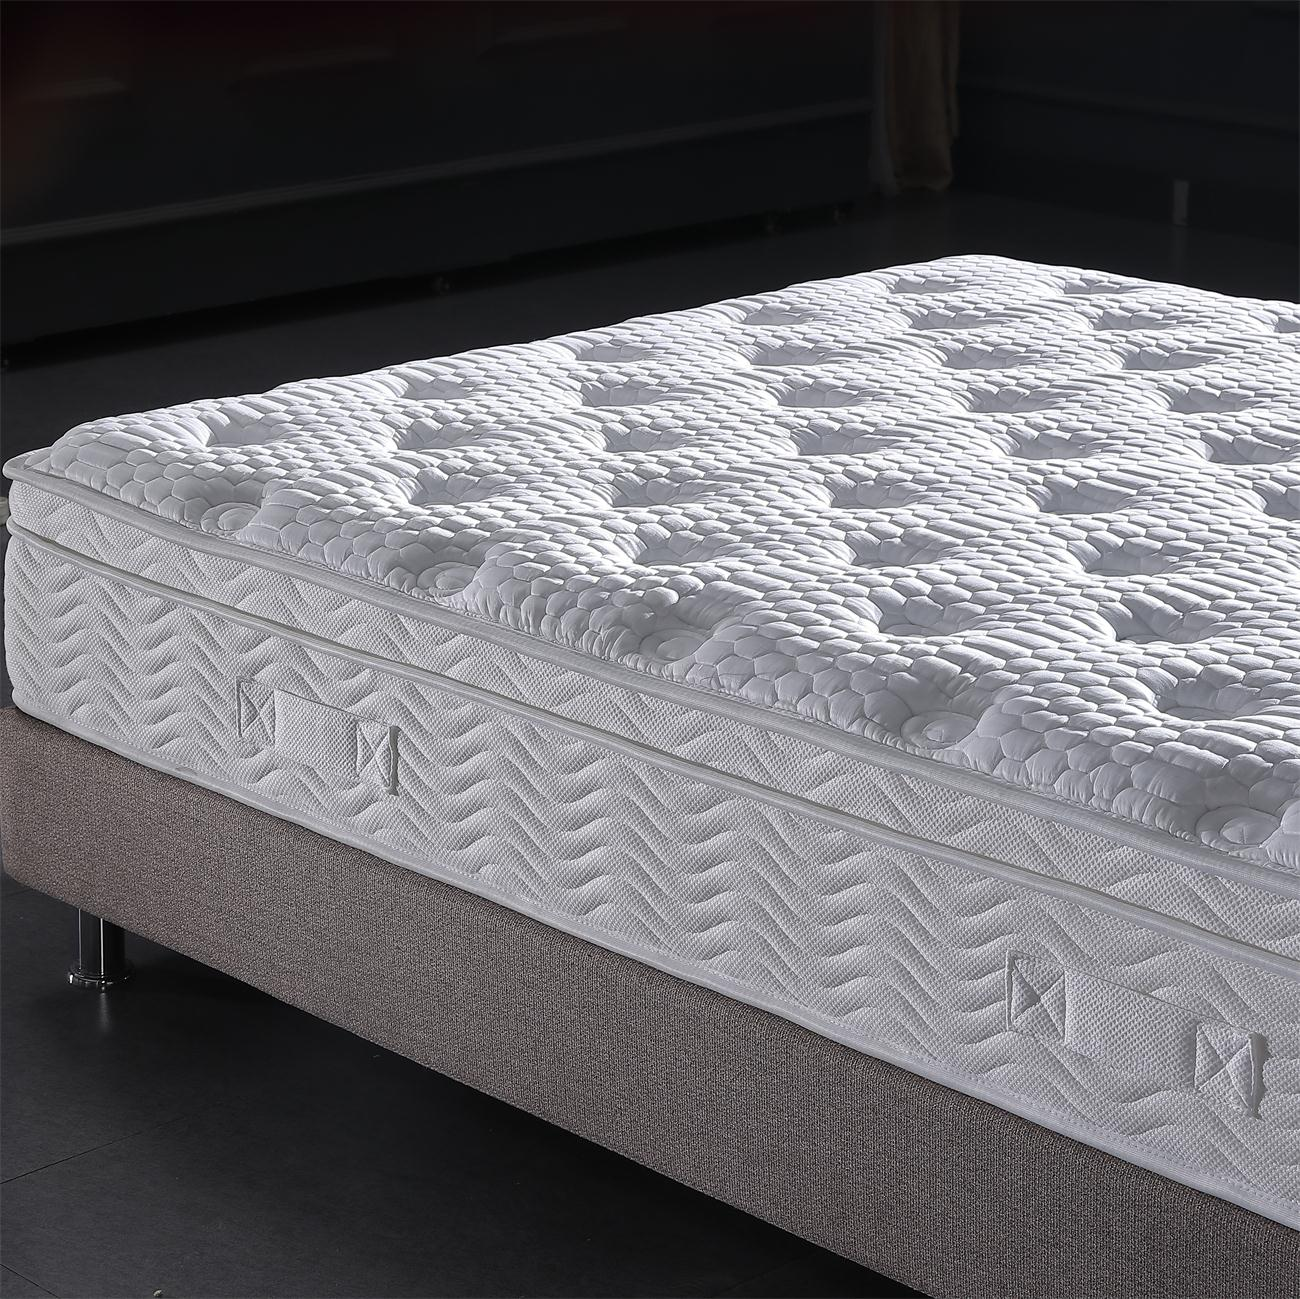 JLH continuous sofa bed mattress for Home for hotel-1